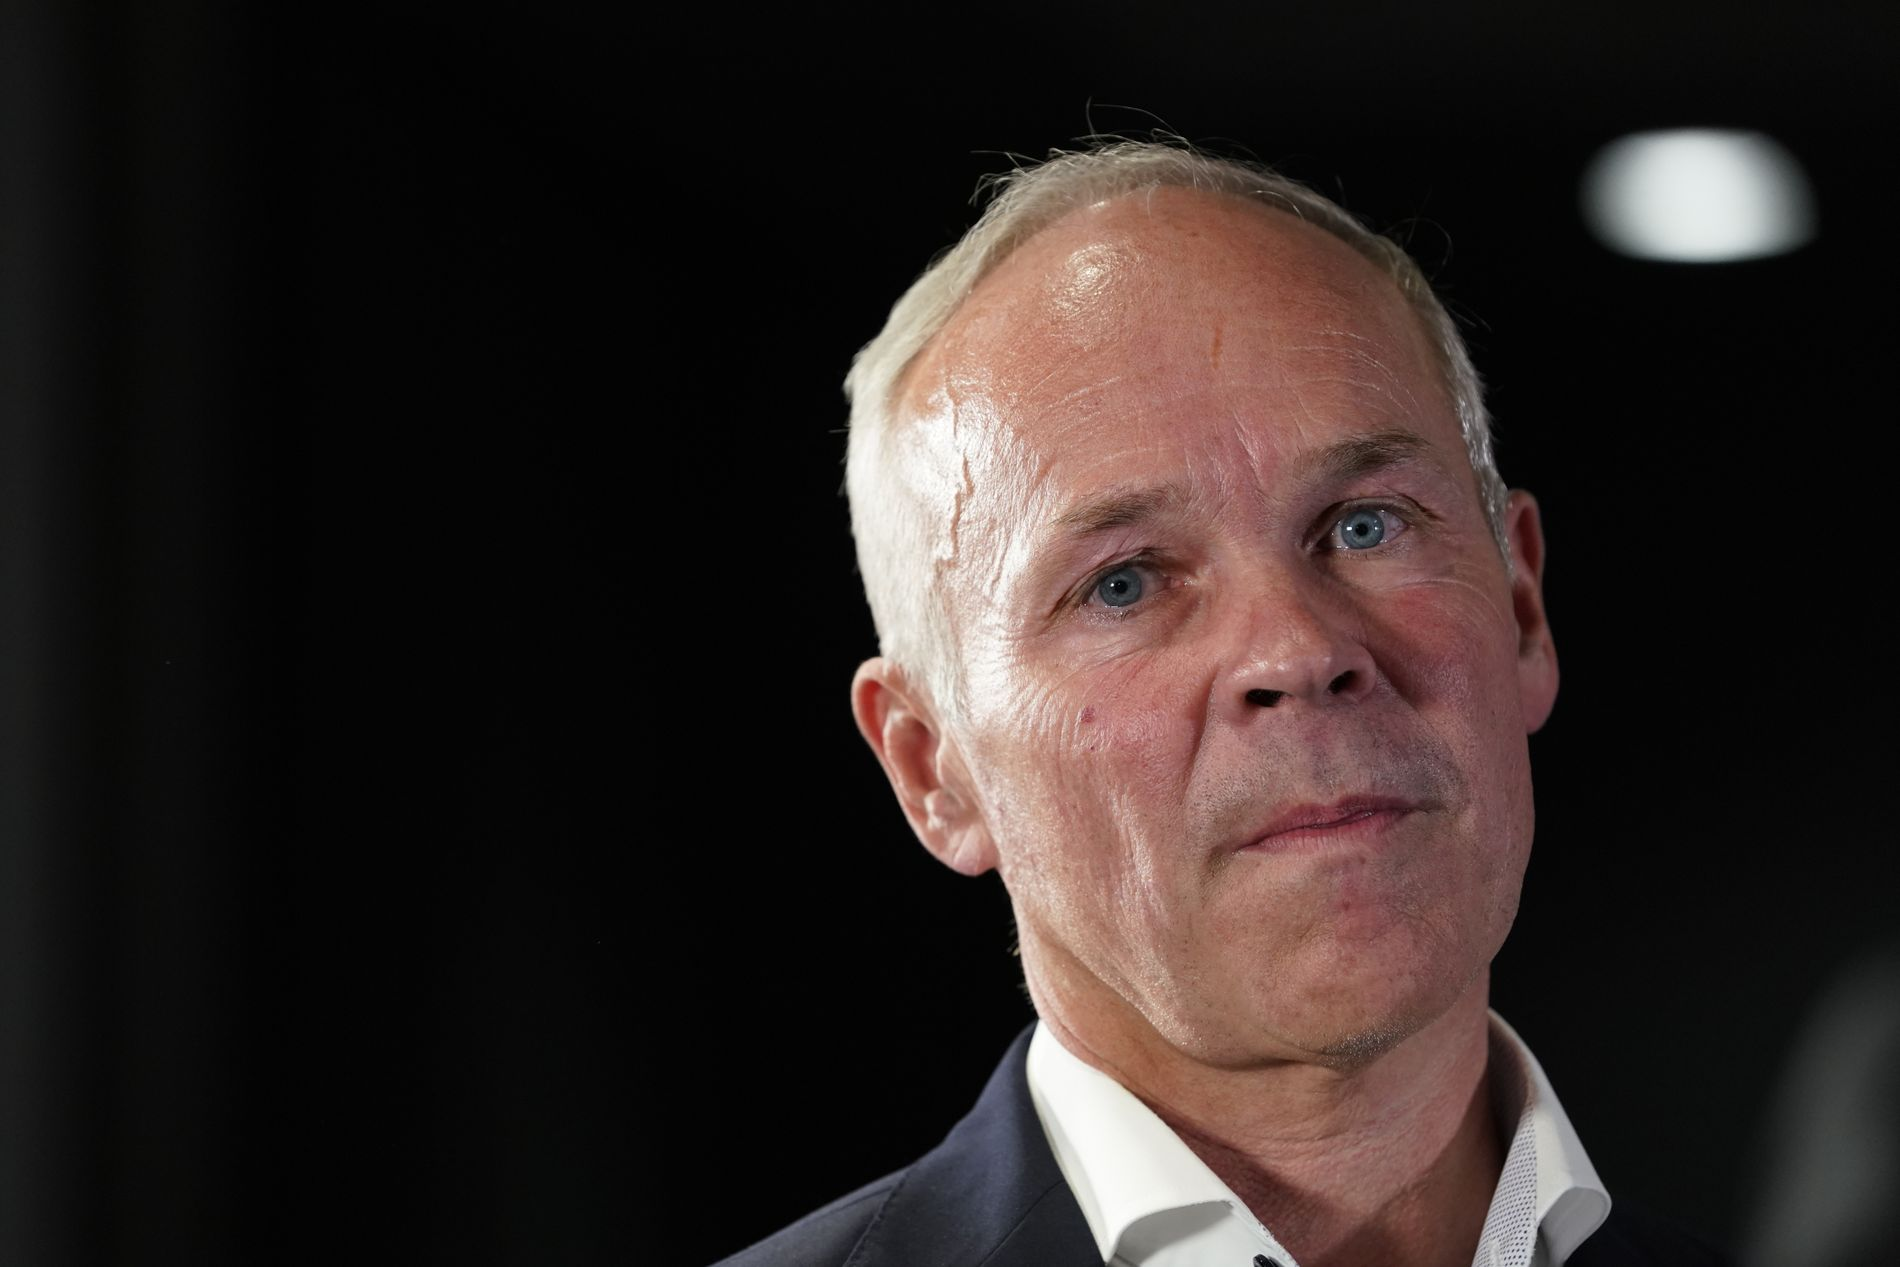 Norway's Finance Ministe Jan Tore Sanner Says Cryptocurrencies Ultimately Likely To Stabilize And Bitcoin Could See 'Breakthroughs' - AZCoin News